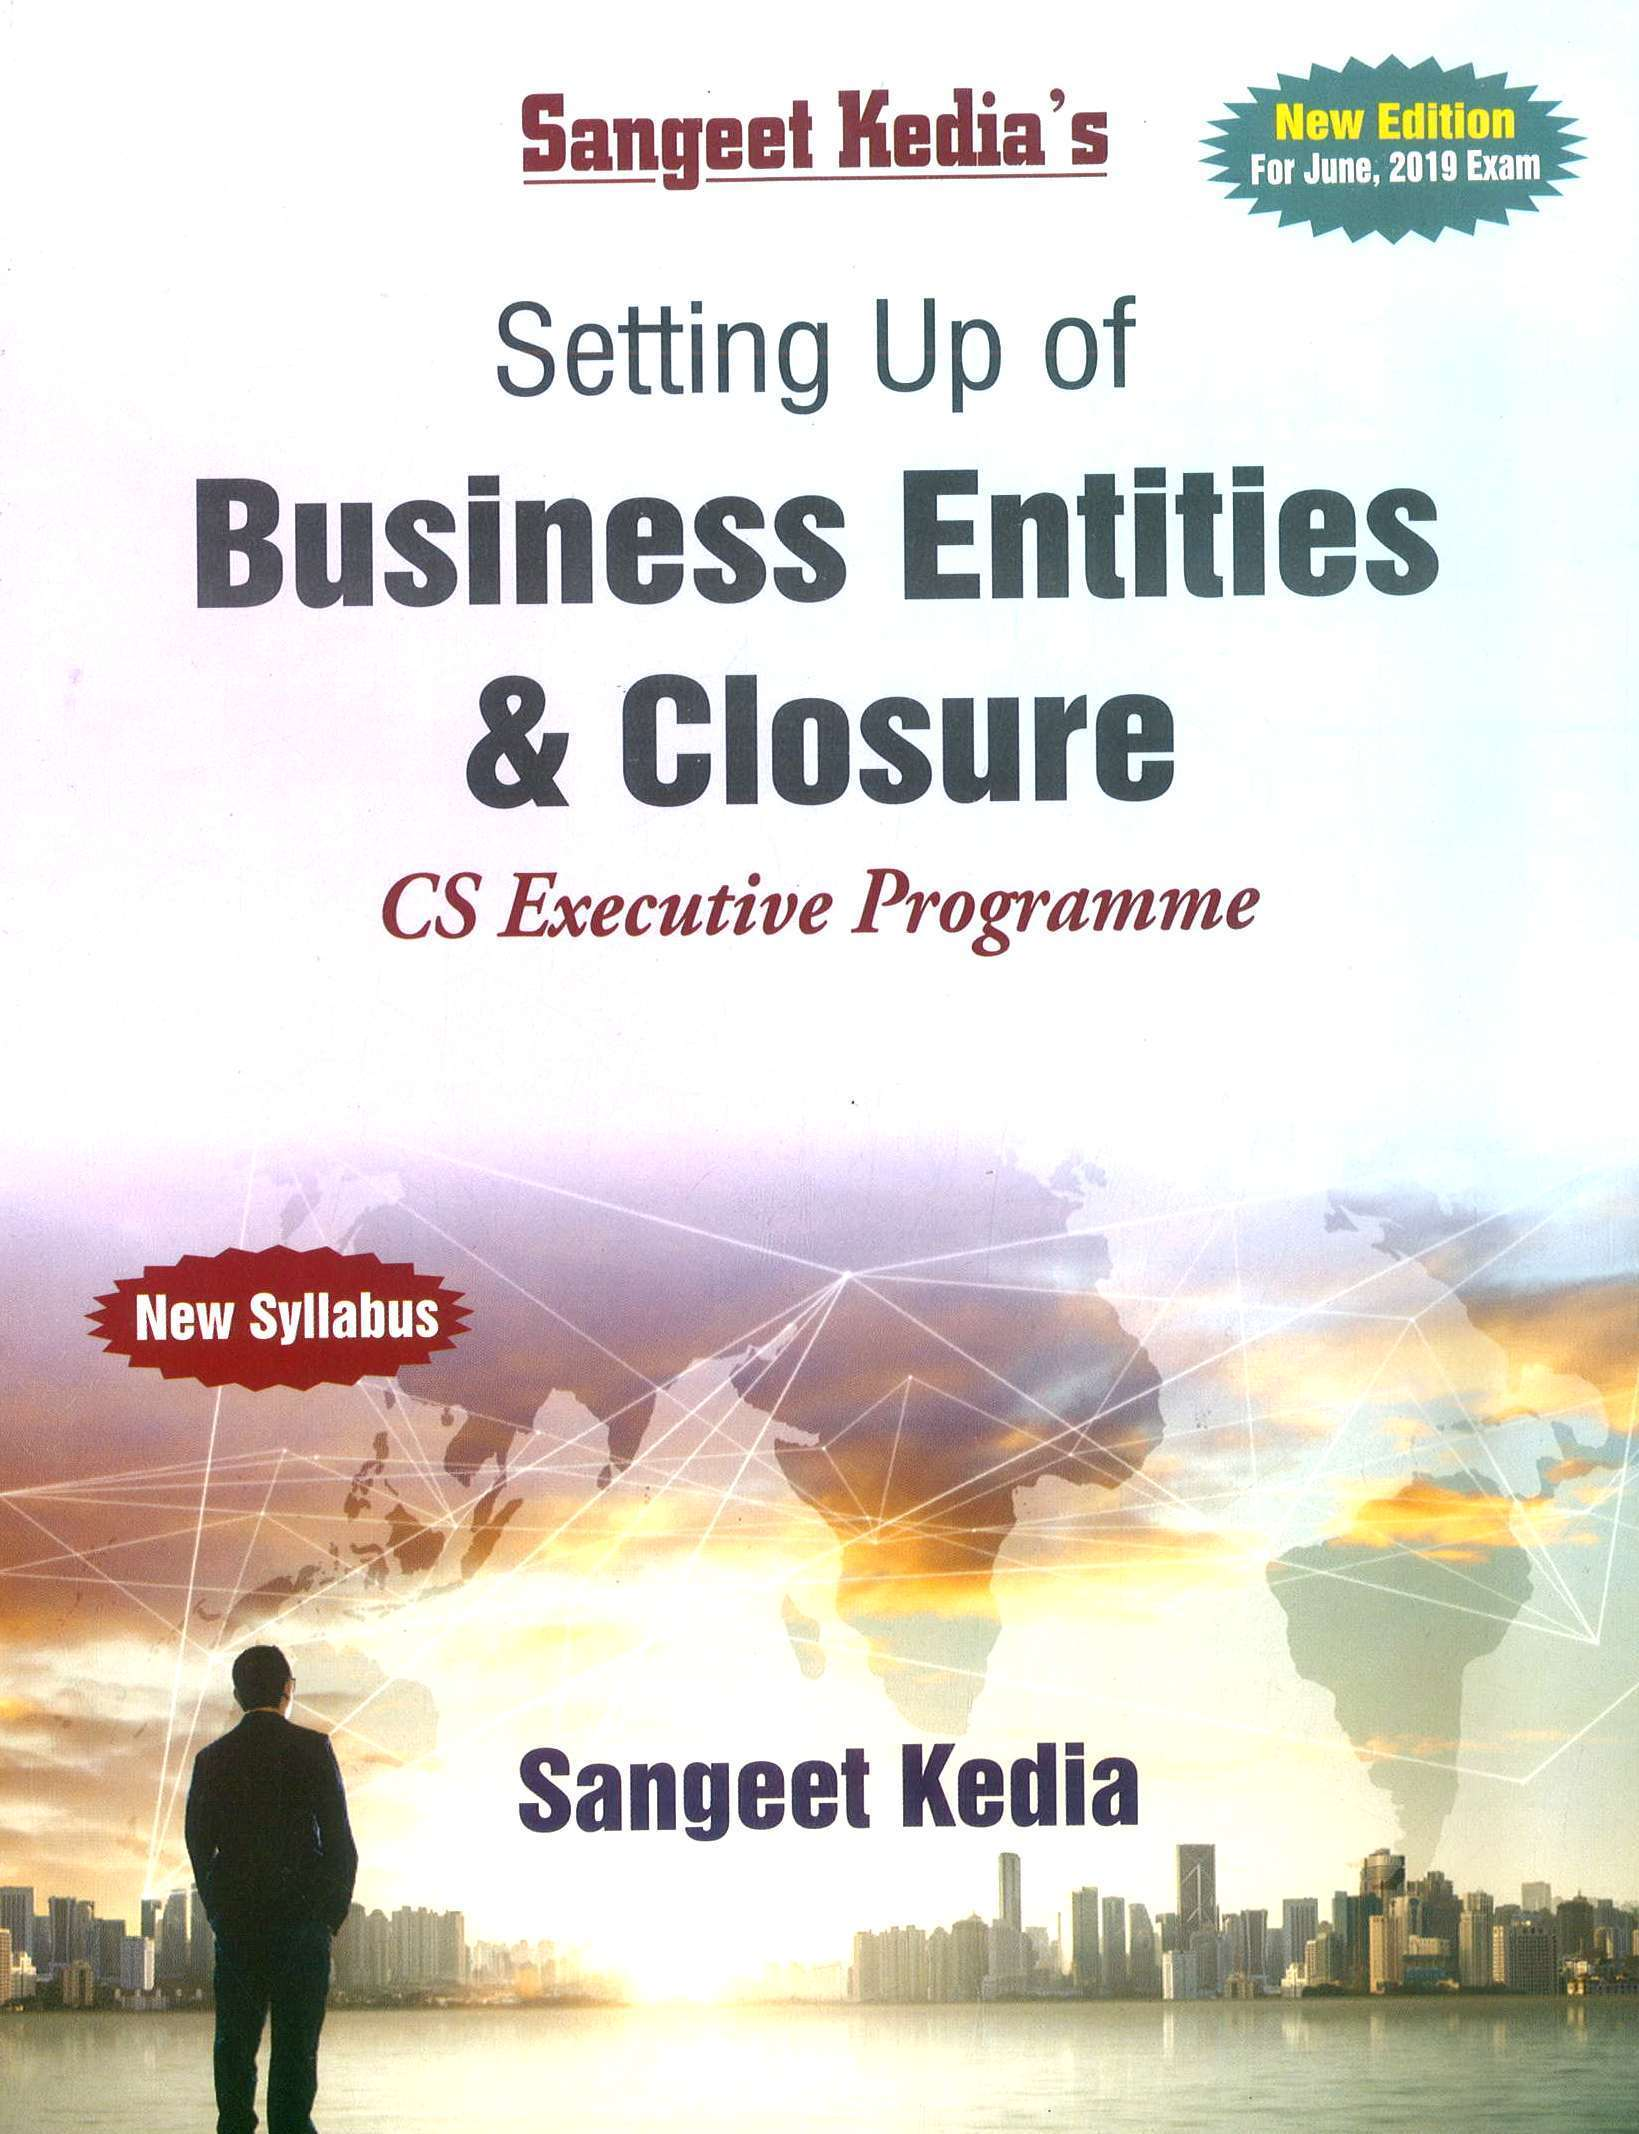 Pooja Law House CS Executive Setting Up Of Business Entities & Closure New Syllabus By Sangeet Kedia Applicable for June 2019 Exam